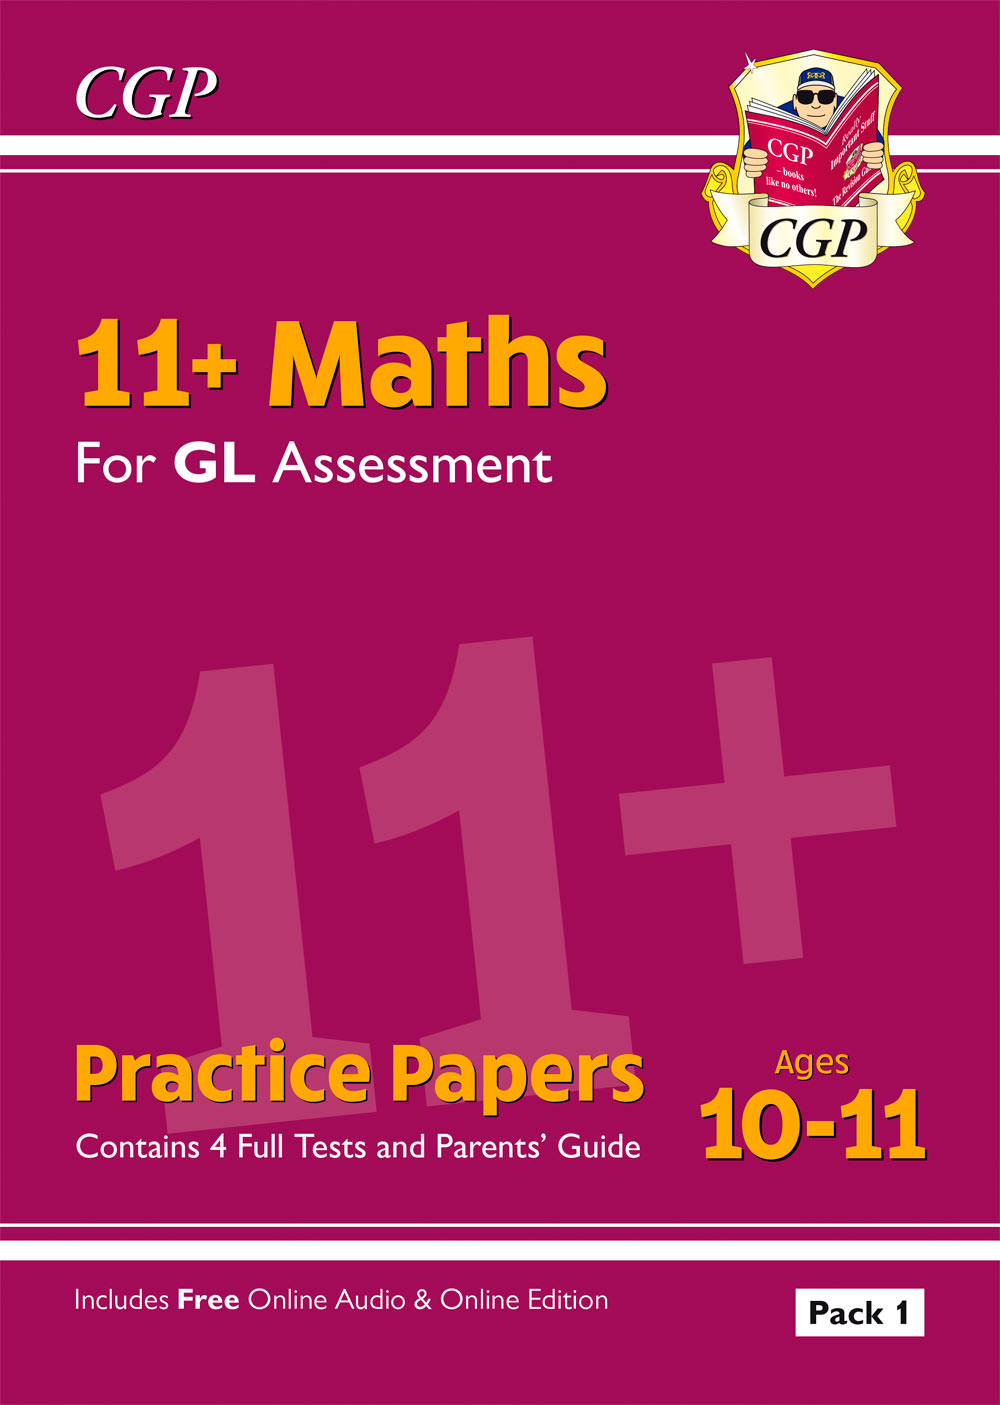 MHTE2 - 11+ GL Maths Practice Papers: Ages 10-11 - Pack 1 (with Parents' Guide & Online Edition)